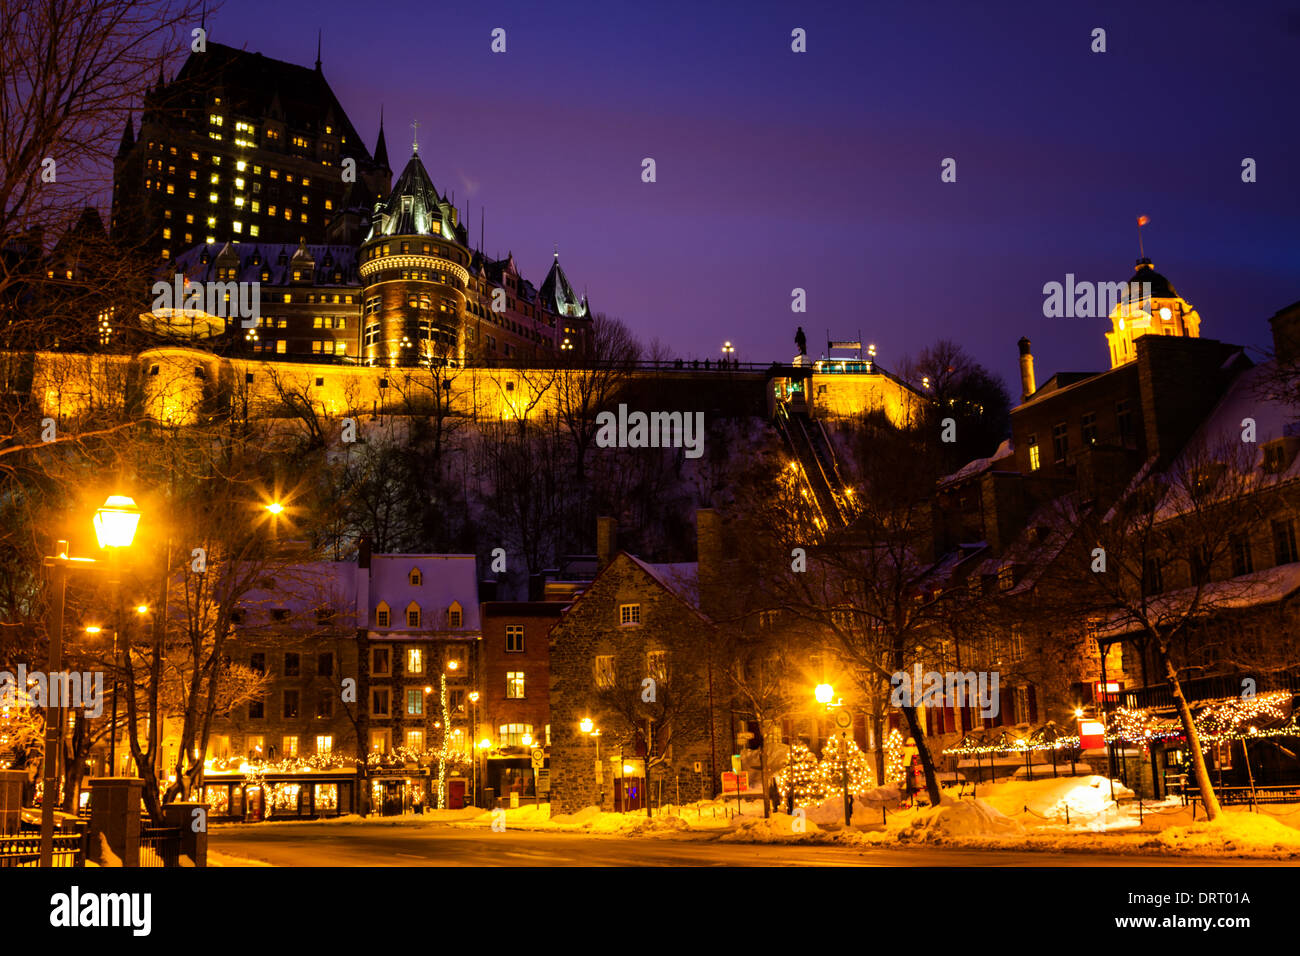 Twilight falls over Chateau Frontenac and Place-Royale, Quebec City, Canada - Stock Image